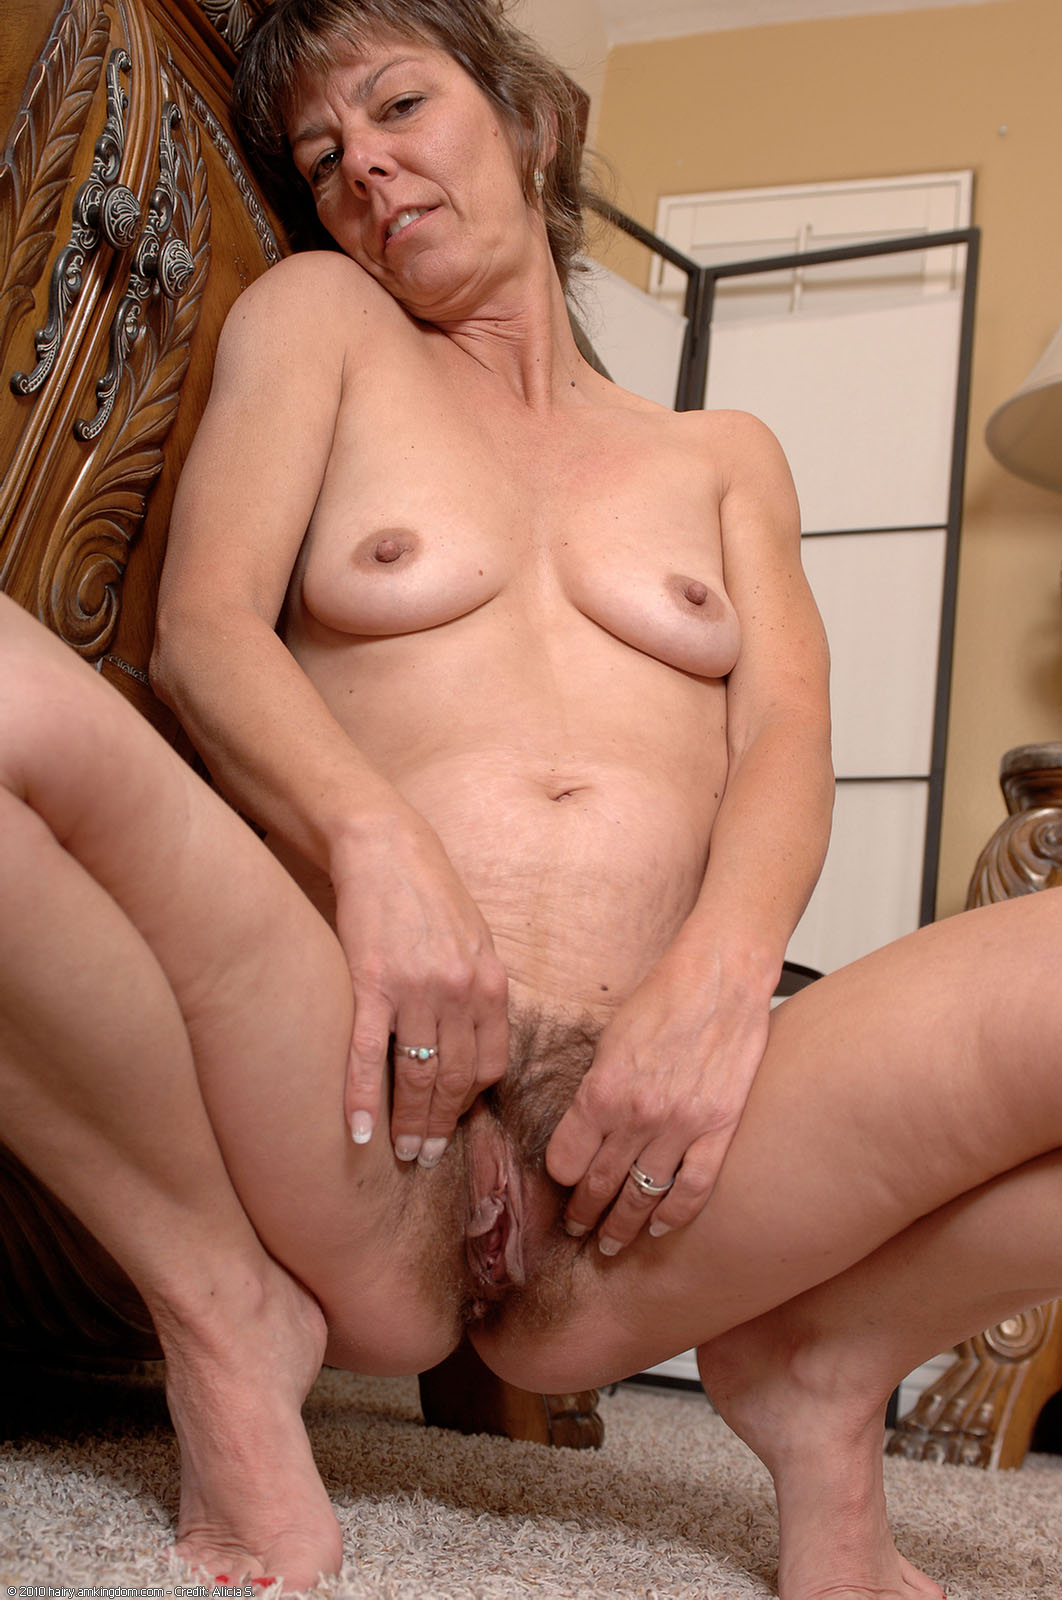 The enema older women mature